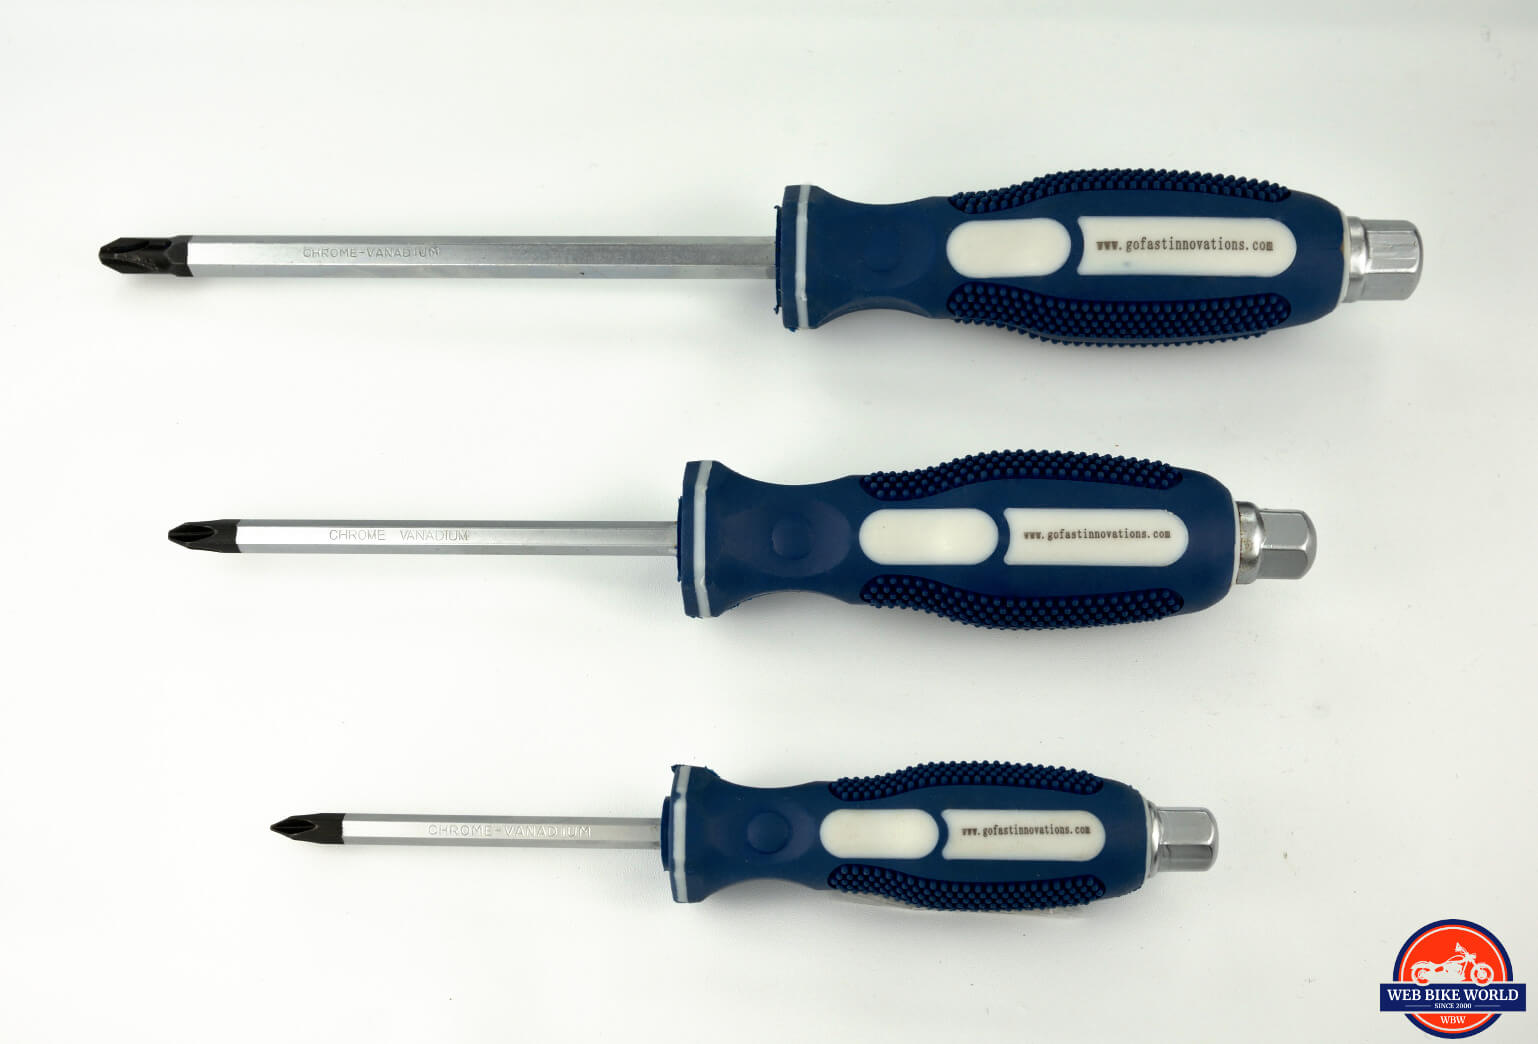 Photo of three sizes of GoFast Innovations JIS screwdrivers.